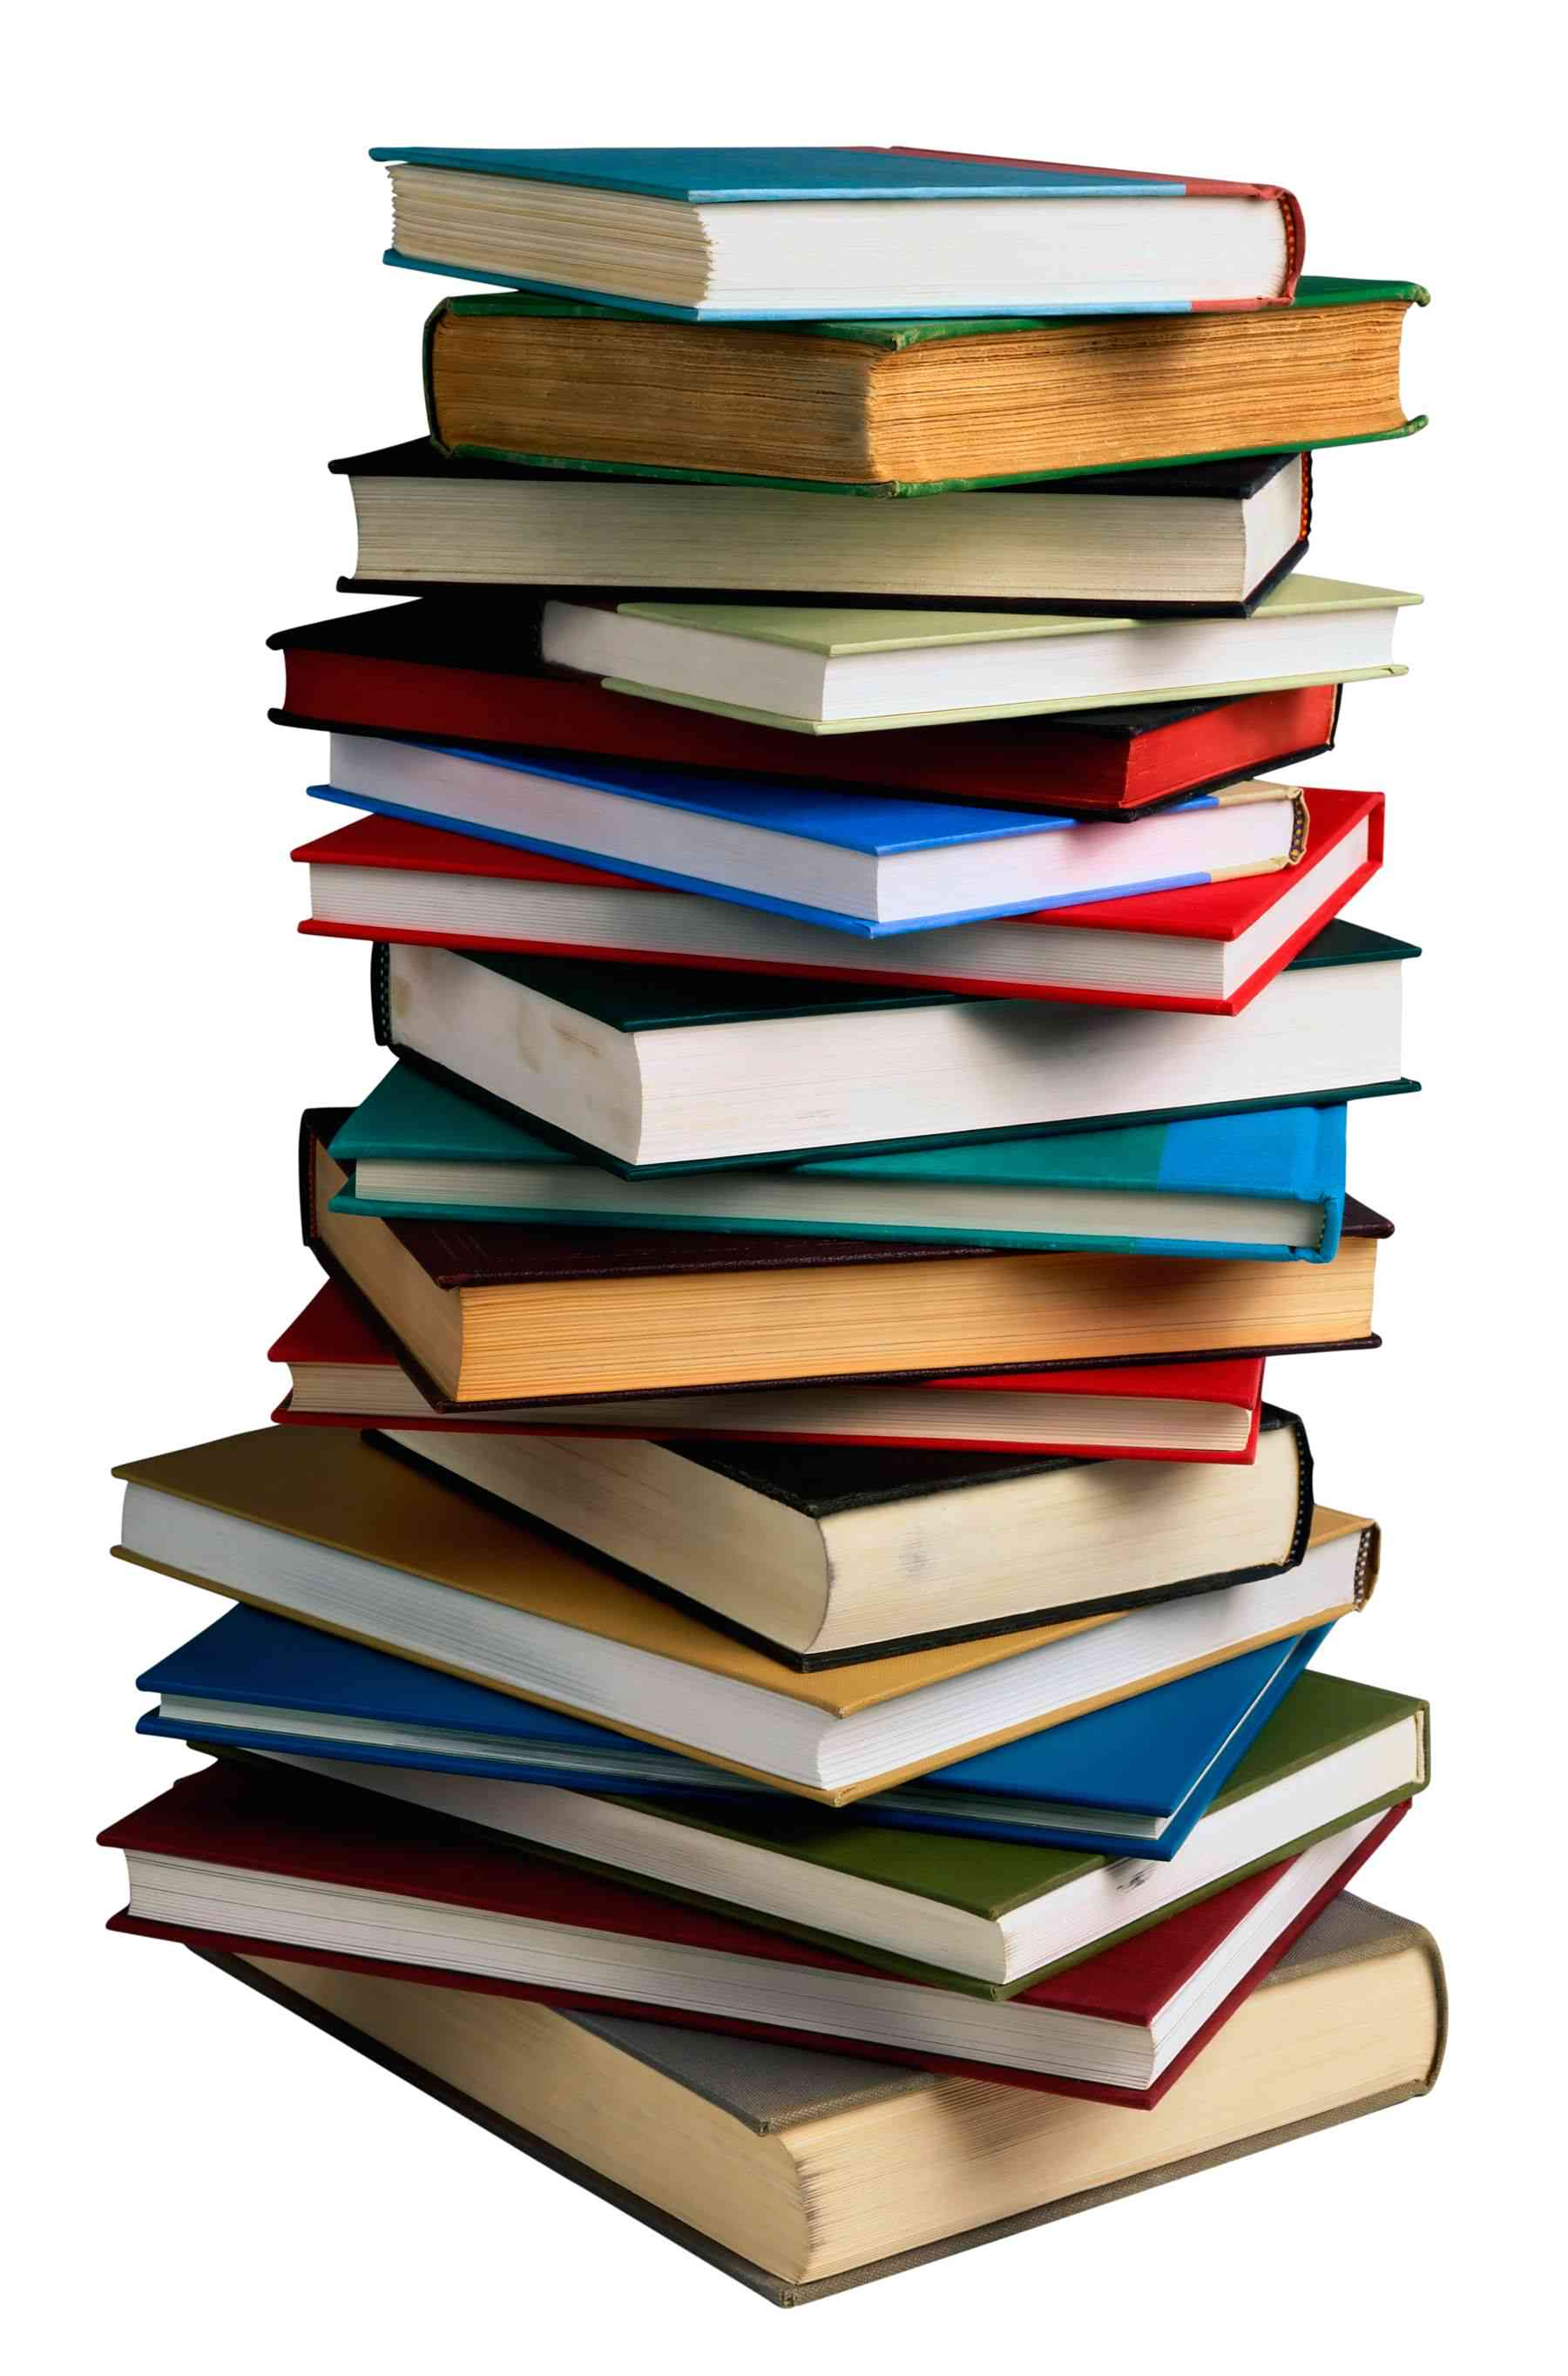 A picture of a stack of books